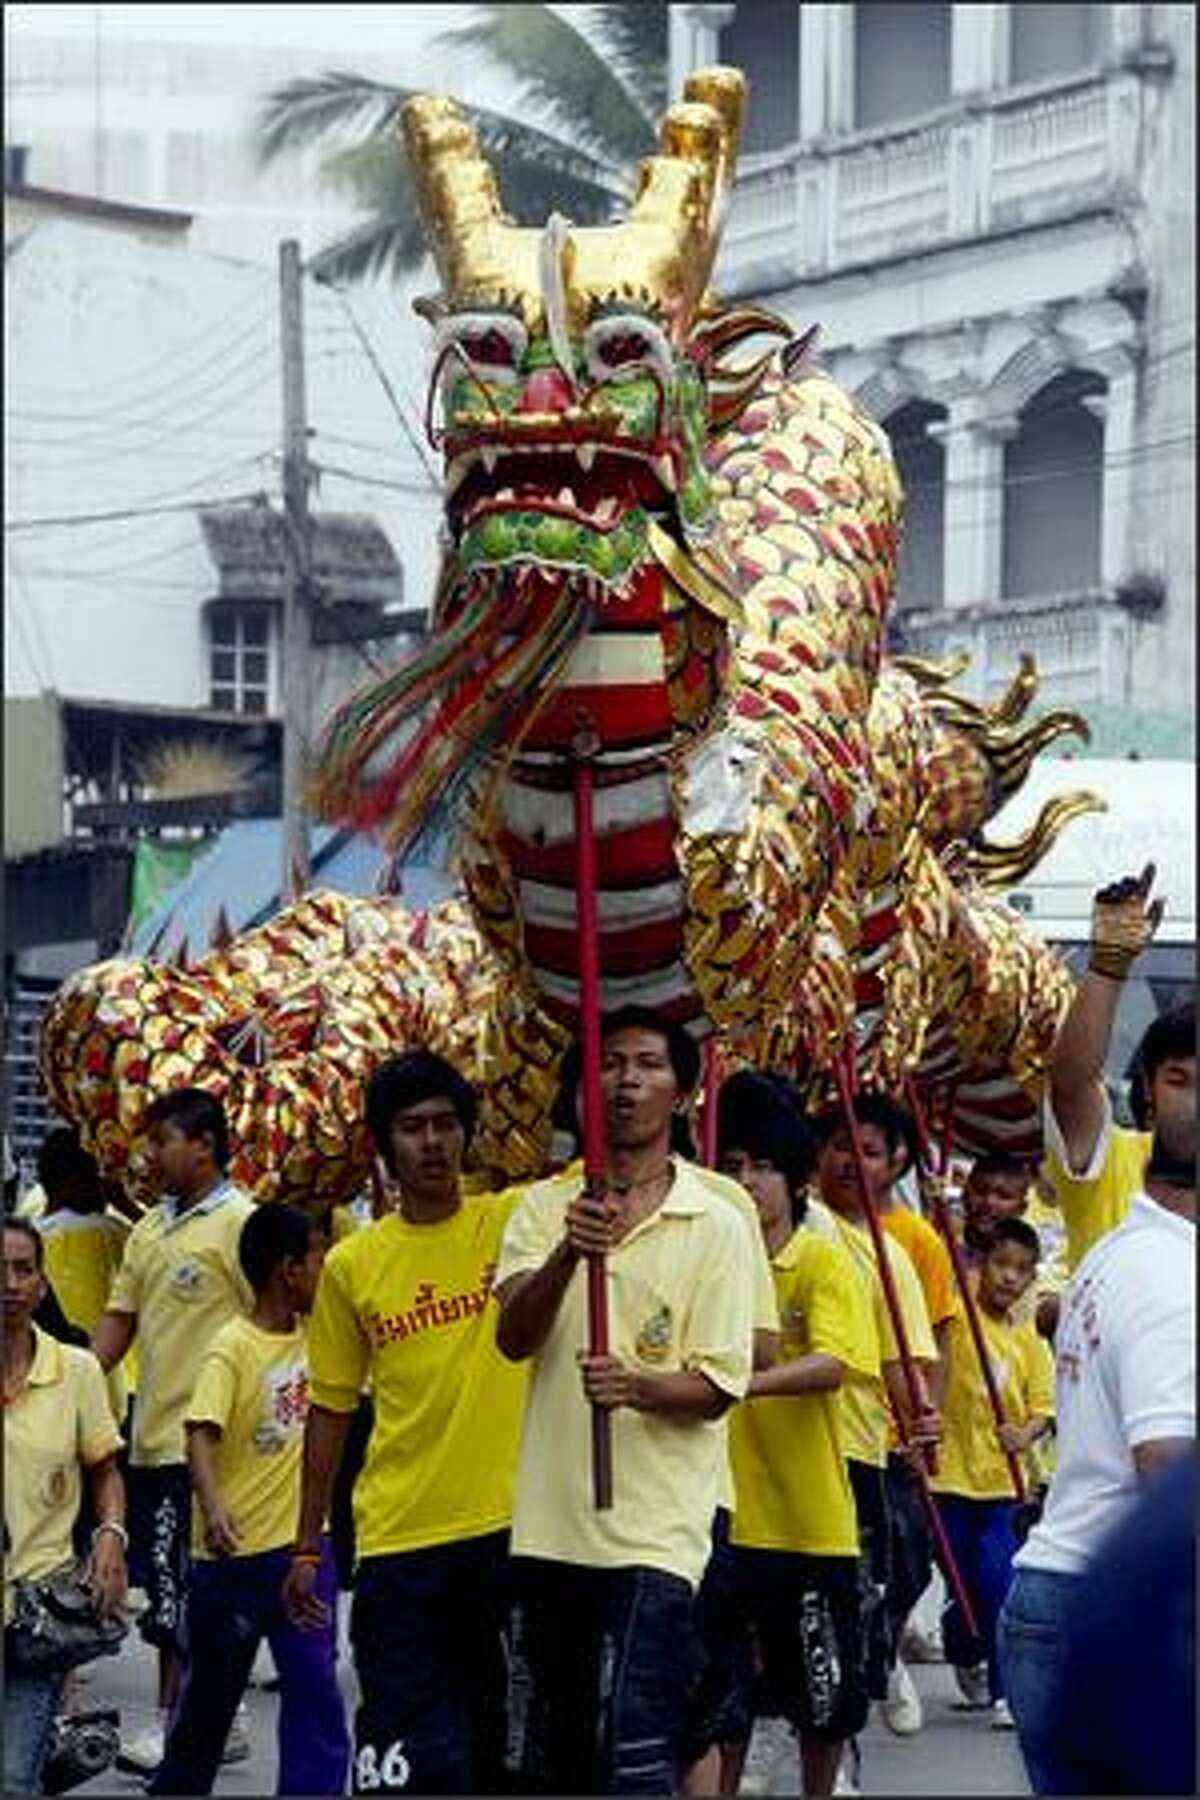 Thai entertainers parade a dragon outside a Chinese temple in Pattani, southern Thailand, on the eve of the Chinese New Year.